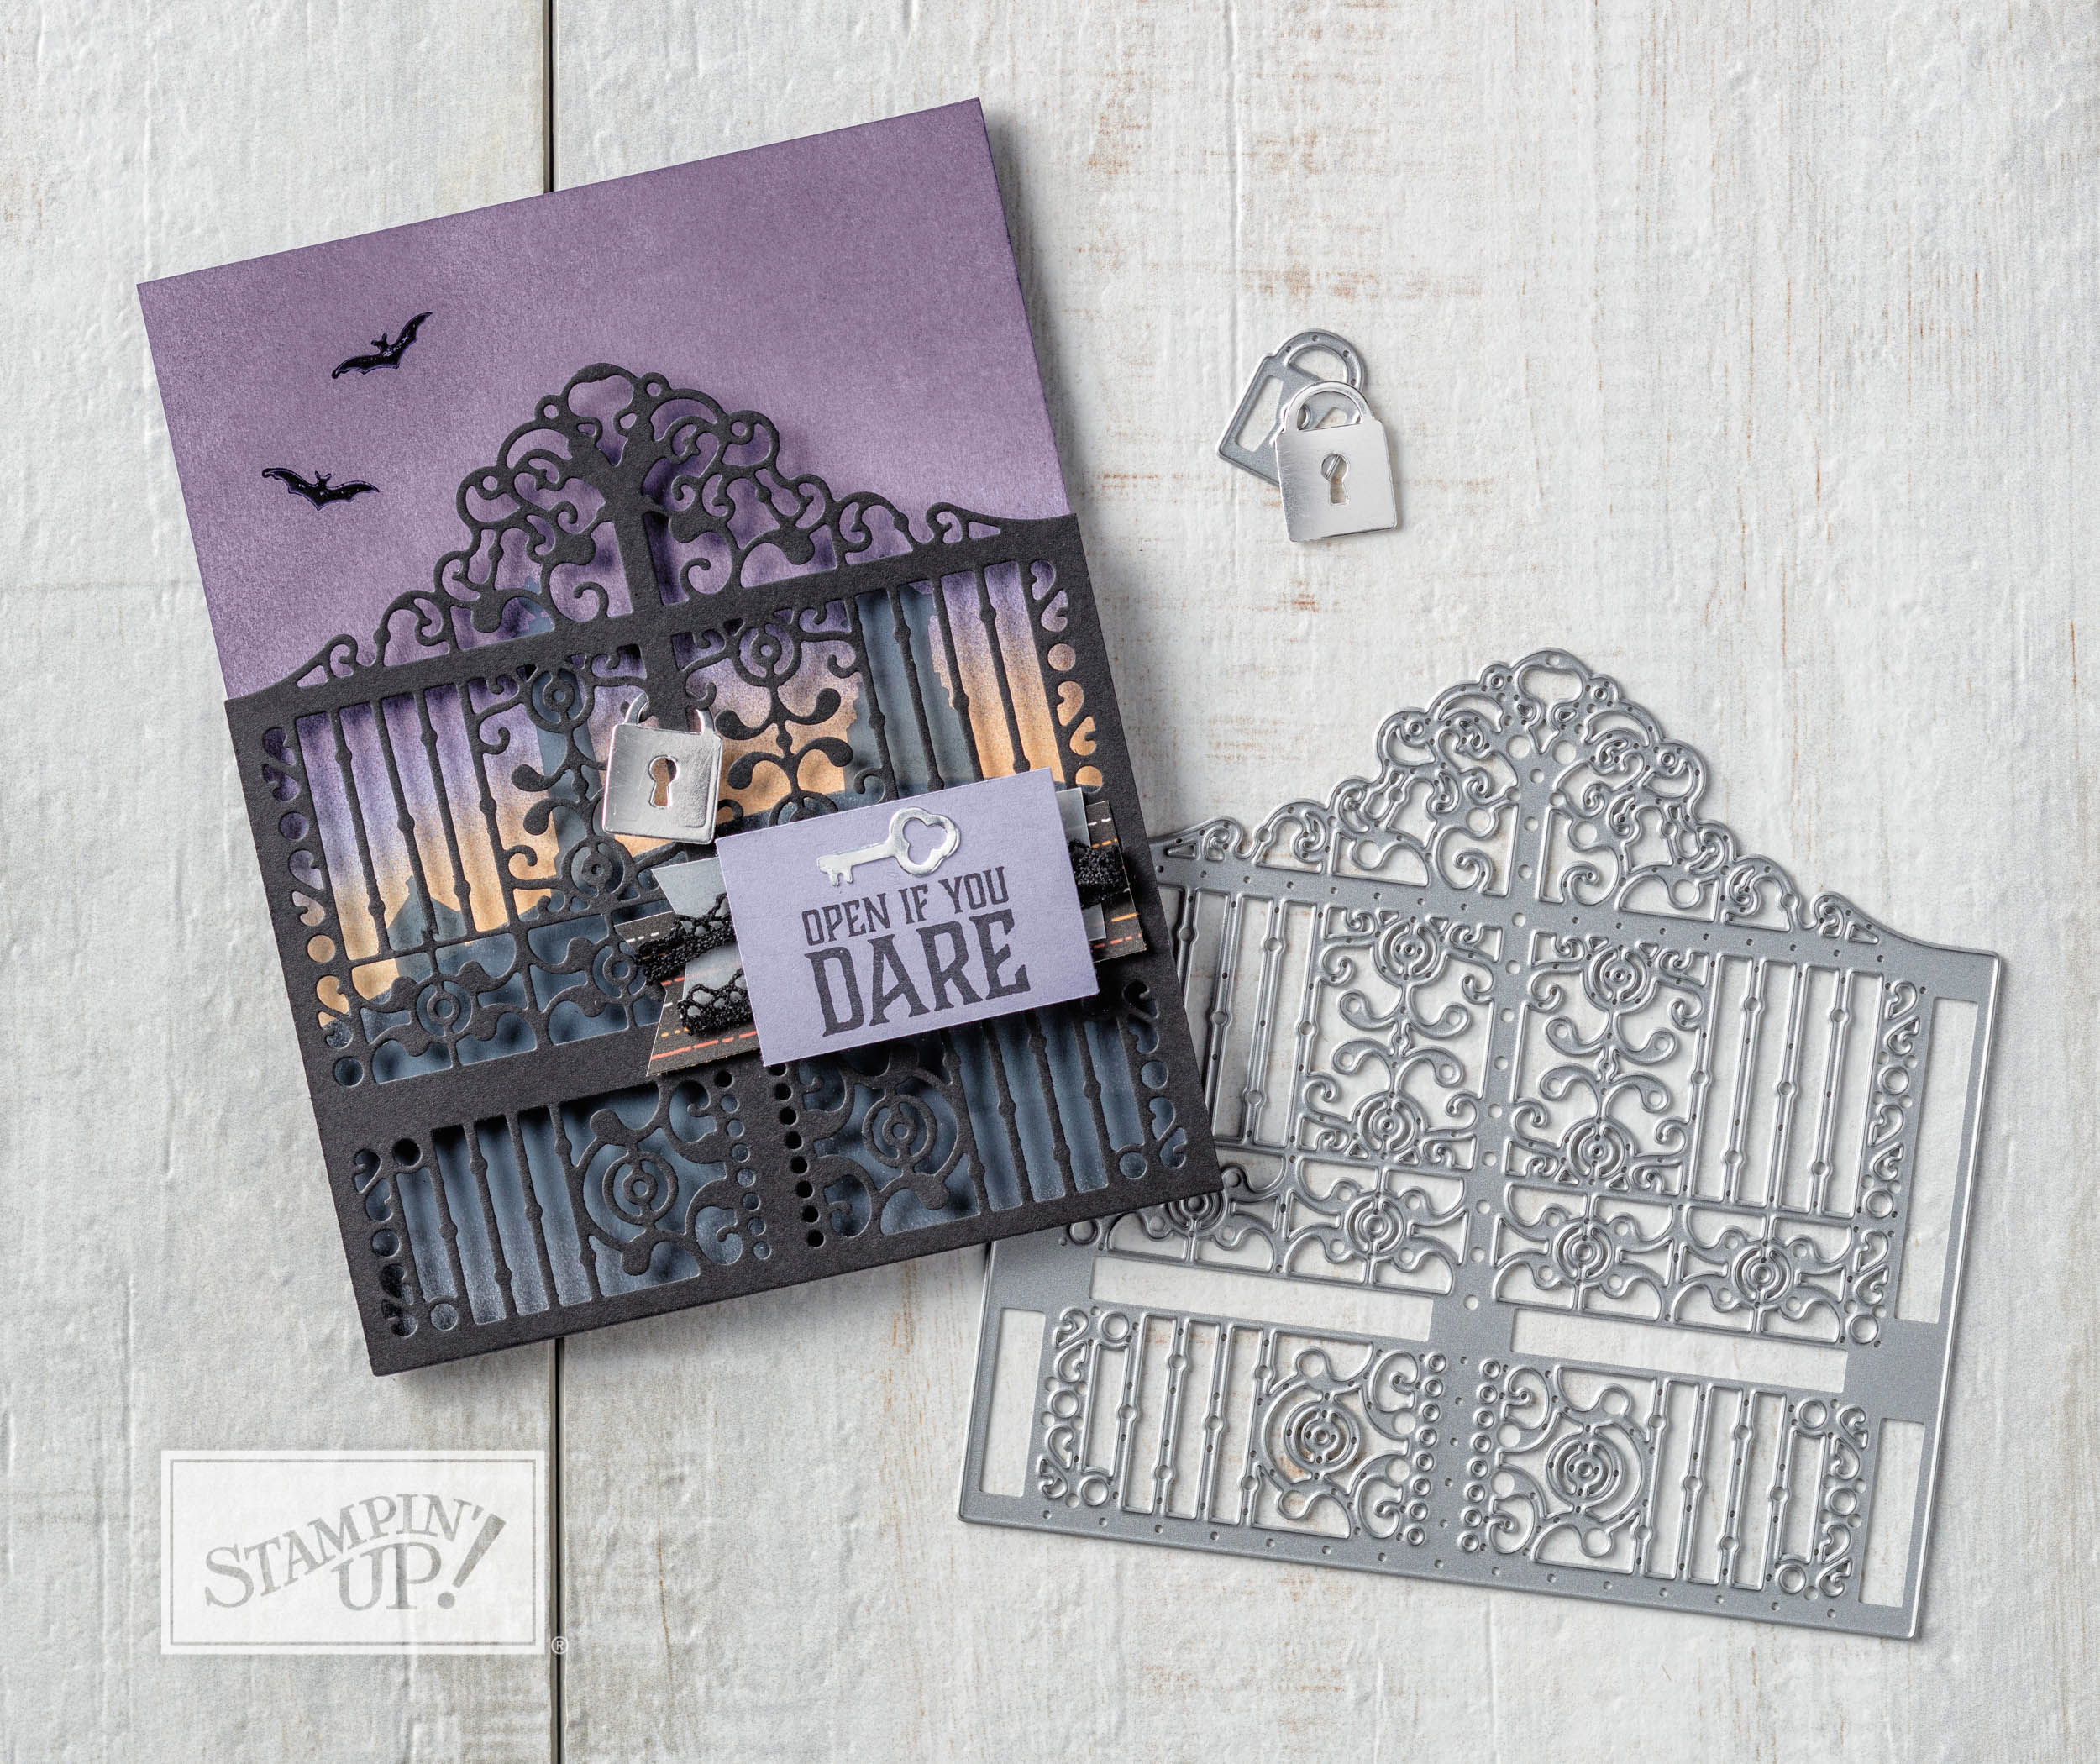 graveyard gate bundle with wendy lee, stampin up, stamping, rubber stamps, handmade, halloween crafts, detailed gate thinlits, graveyard gate stamp set